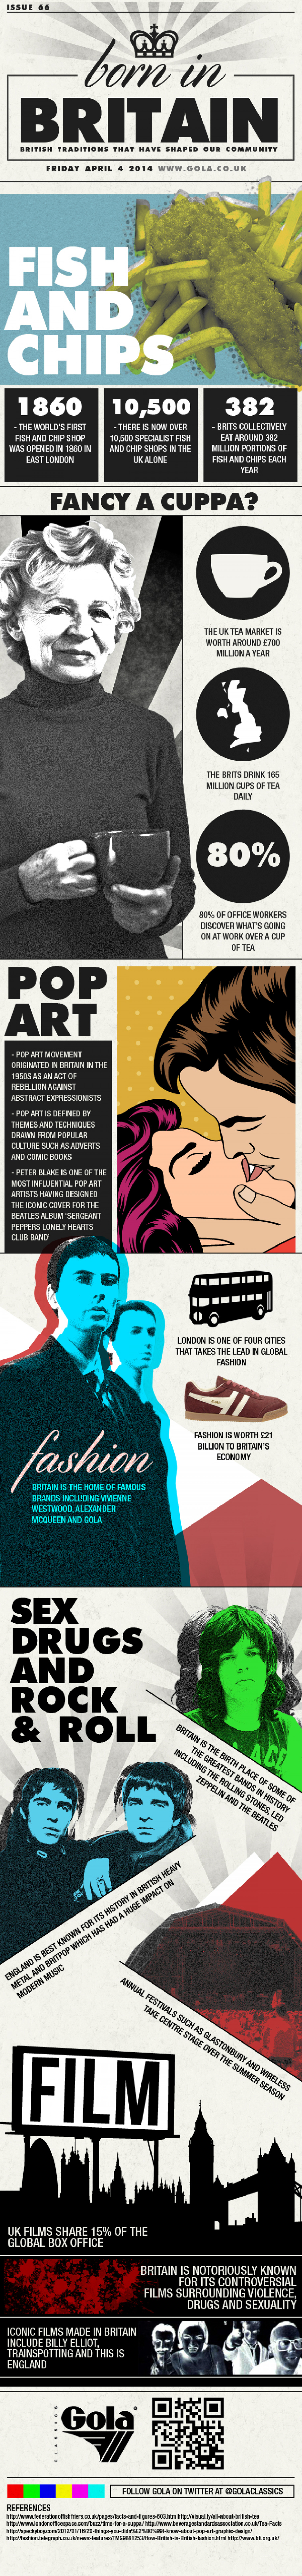 Born in Britain - British Traditions That Have Shaped Our Community Infographic